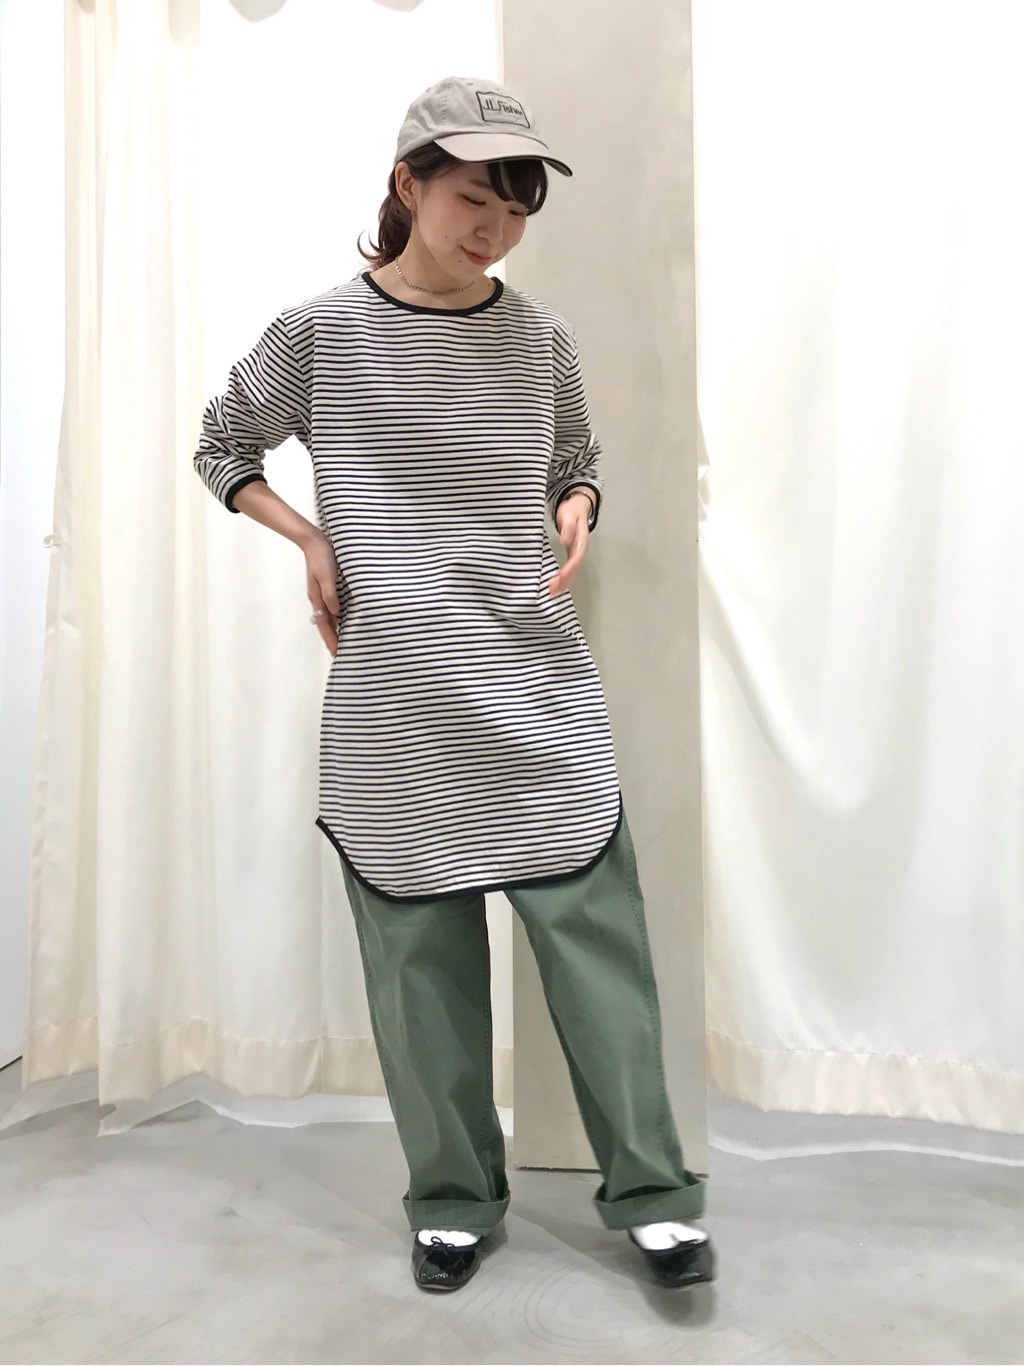 AMB SHOP PAR ICI CHILD WOMAN,PAR ICI ルミネ横浜 身長:154cm 2020.05.03